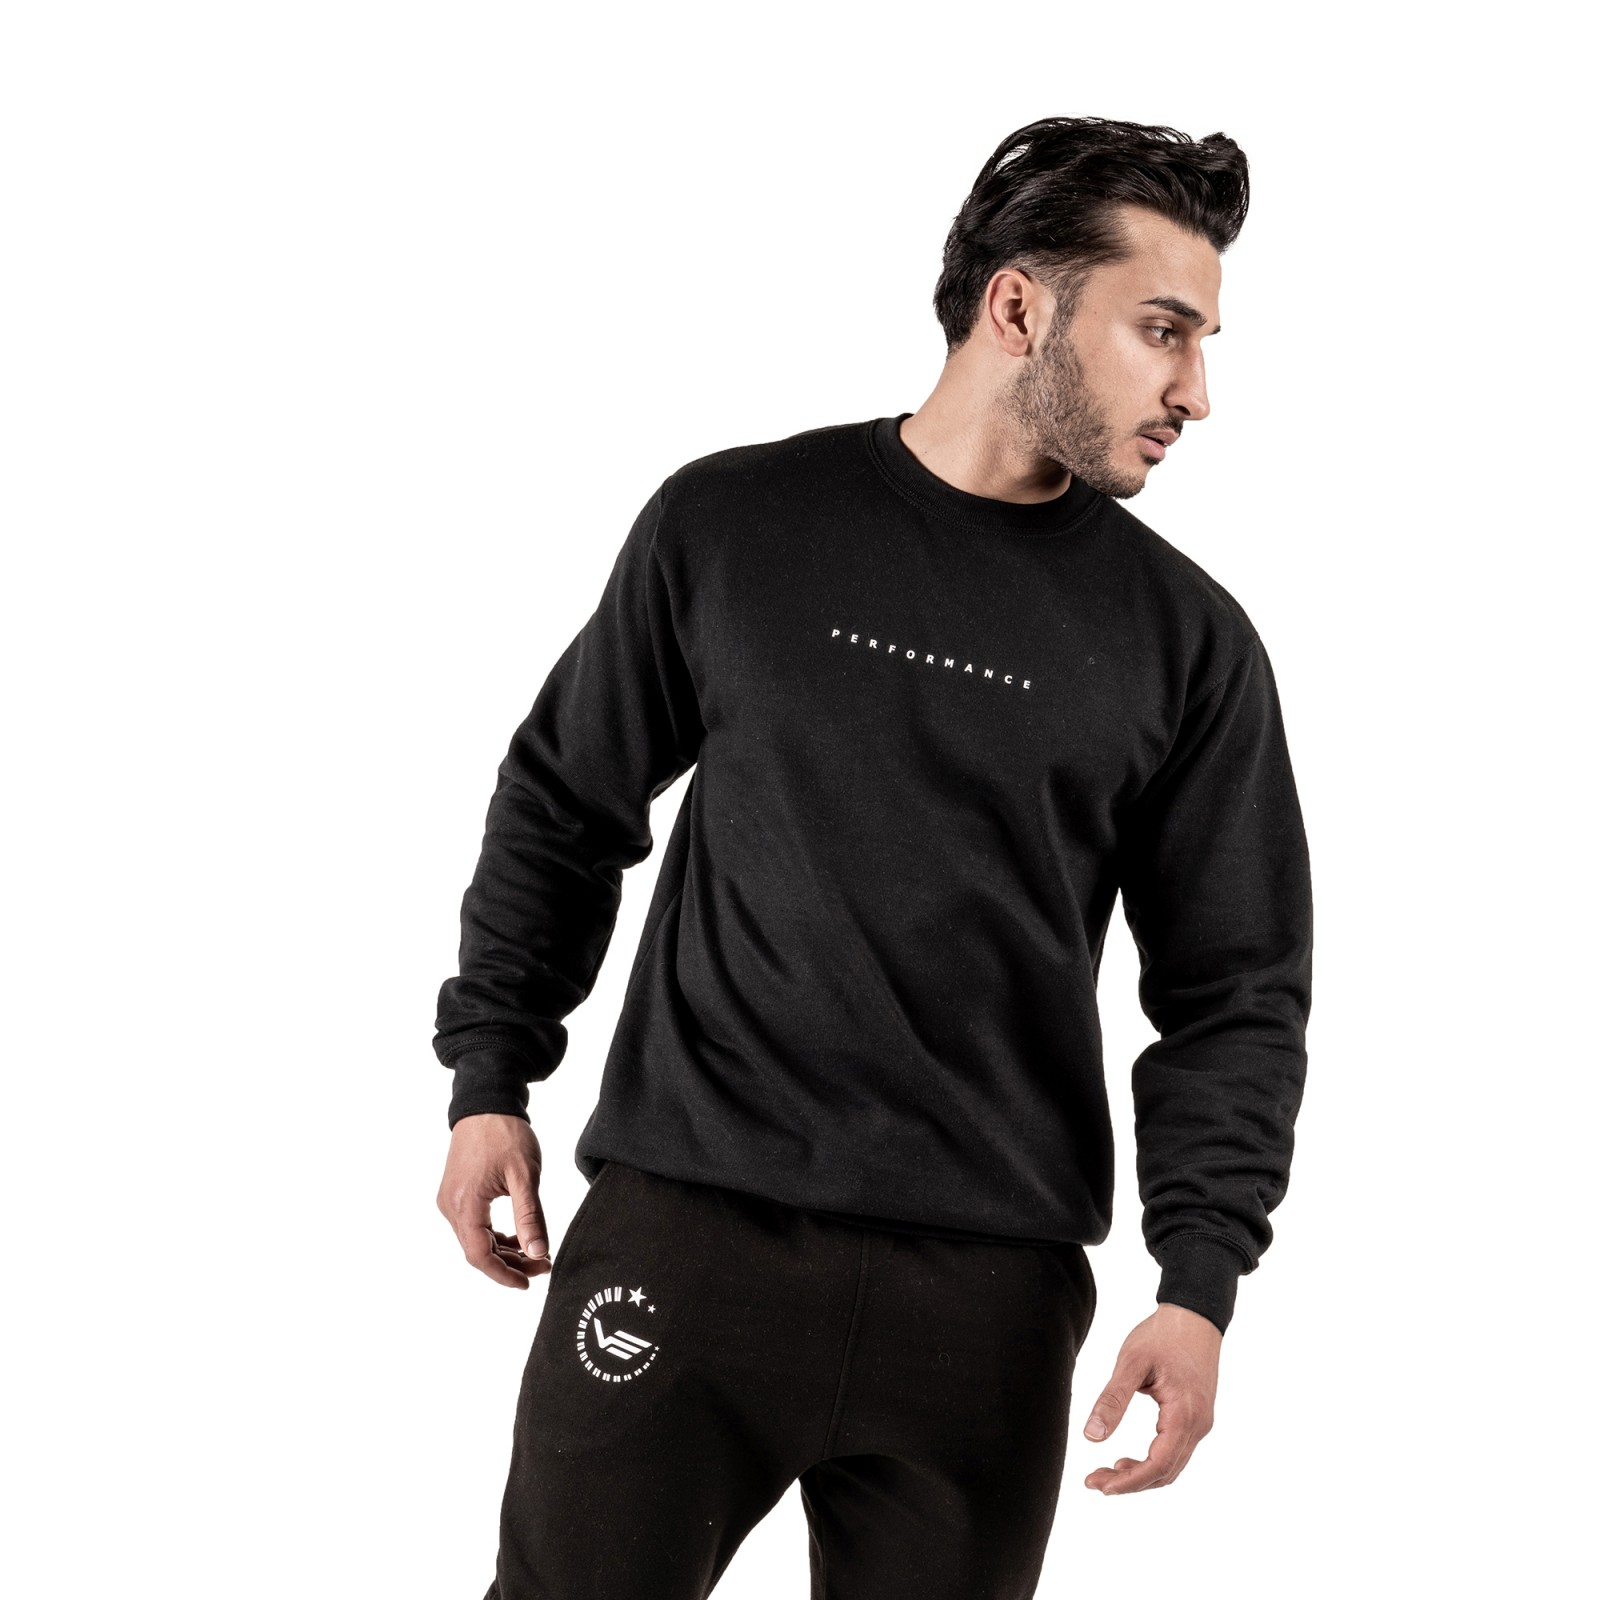 Ninety3 Sweater - black